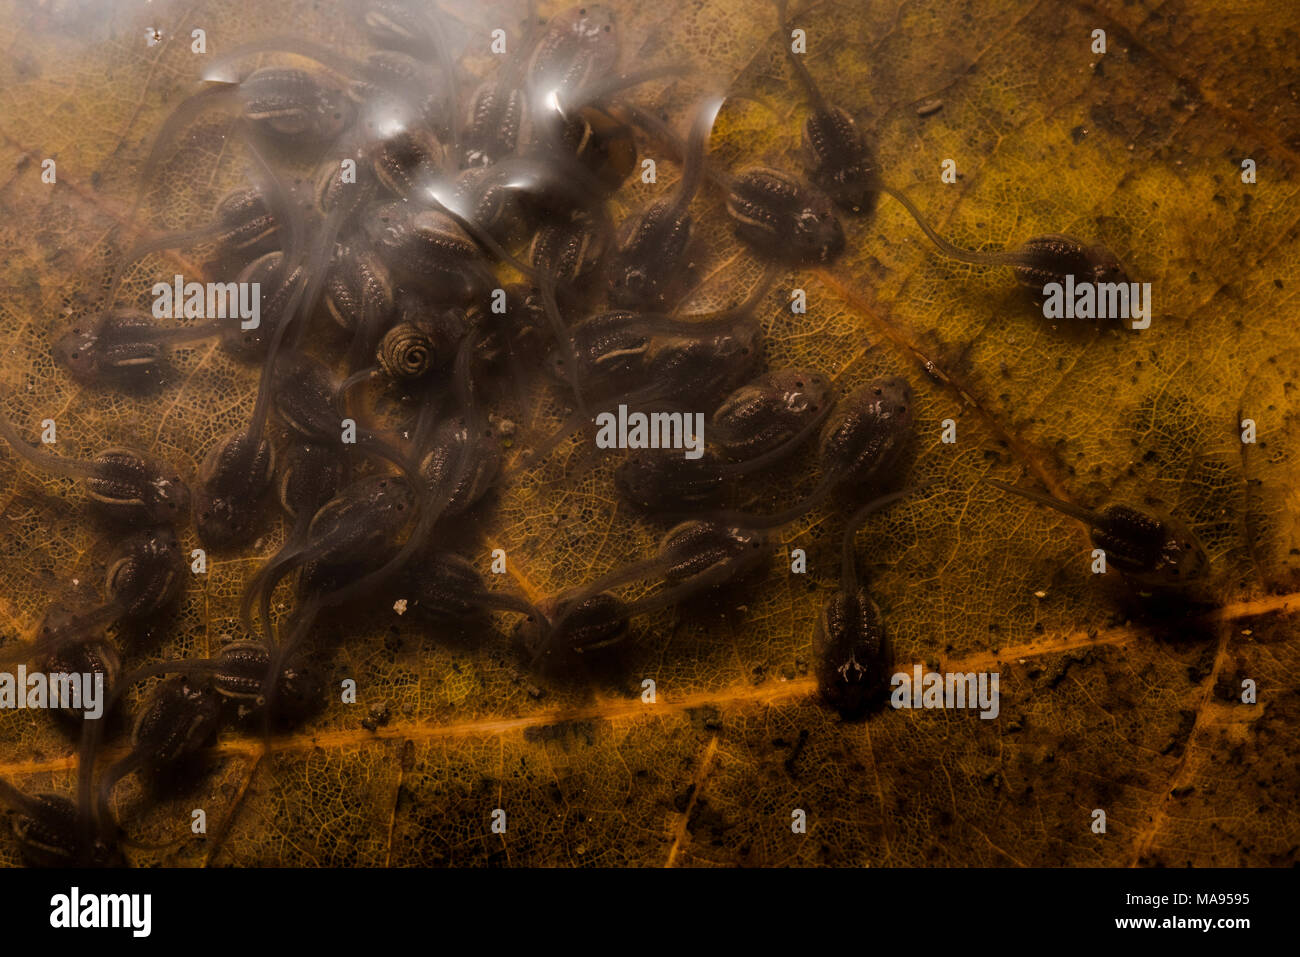 A school of tropical tadpoles from the Peruvian jungle, eventually they will metamorphose to little froglets and leave the water. - Stock Image